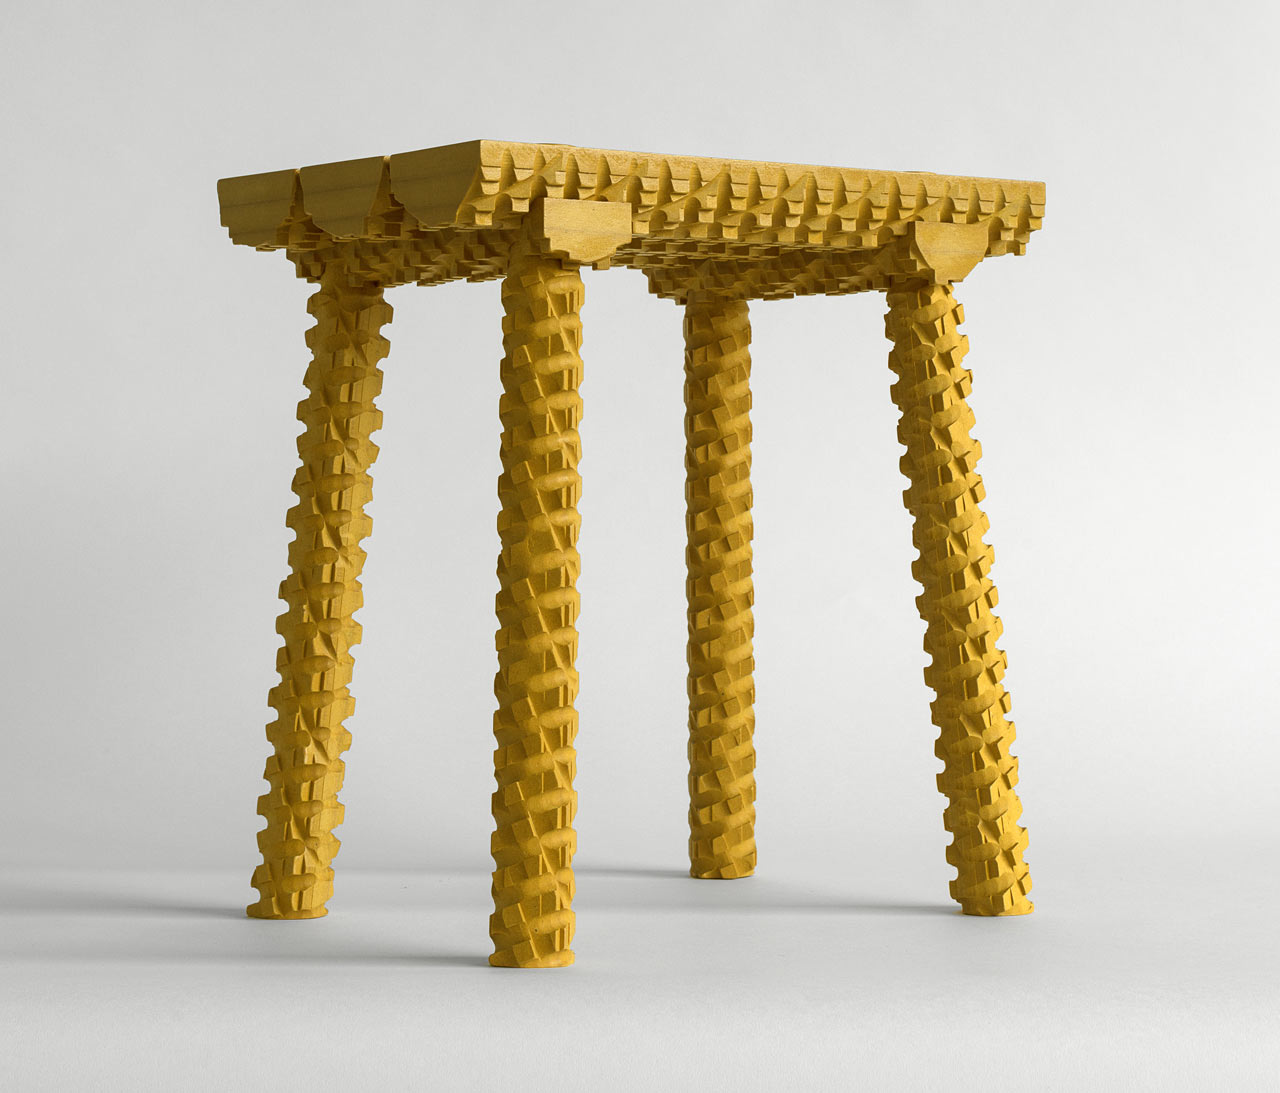 Rustic Stools 2.1-2.5 by Mark Laban